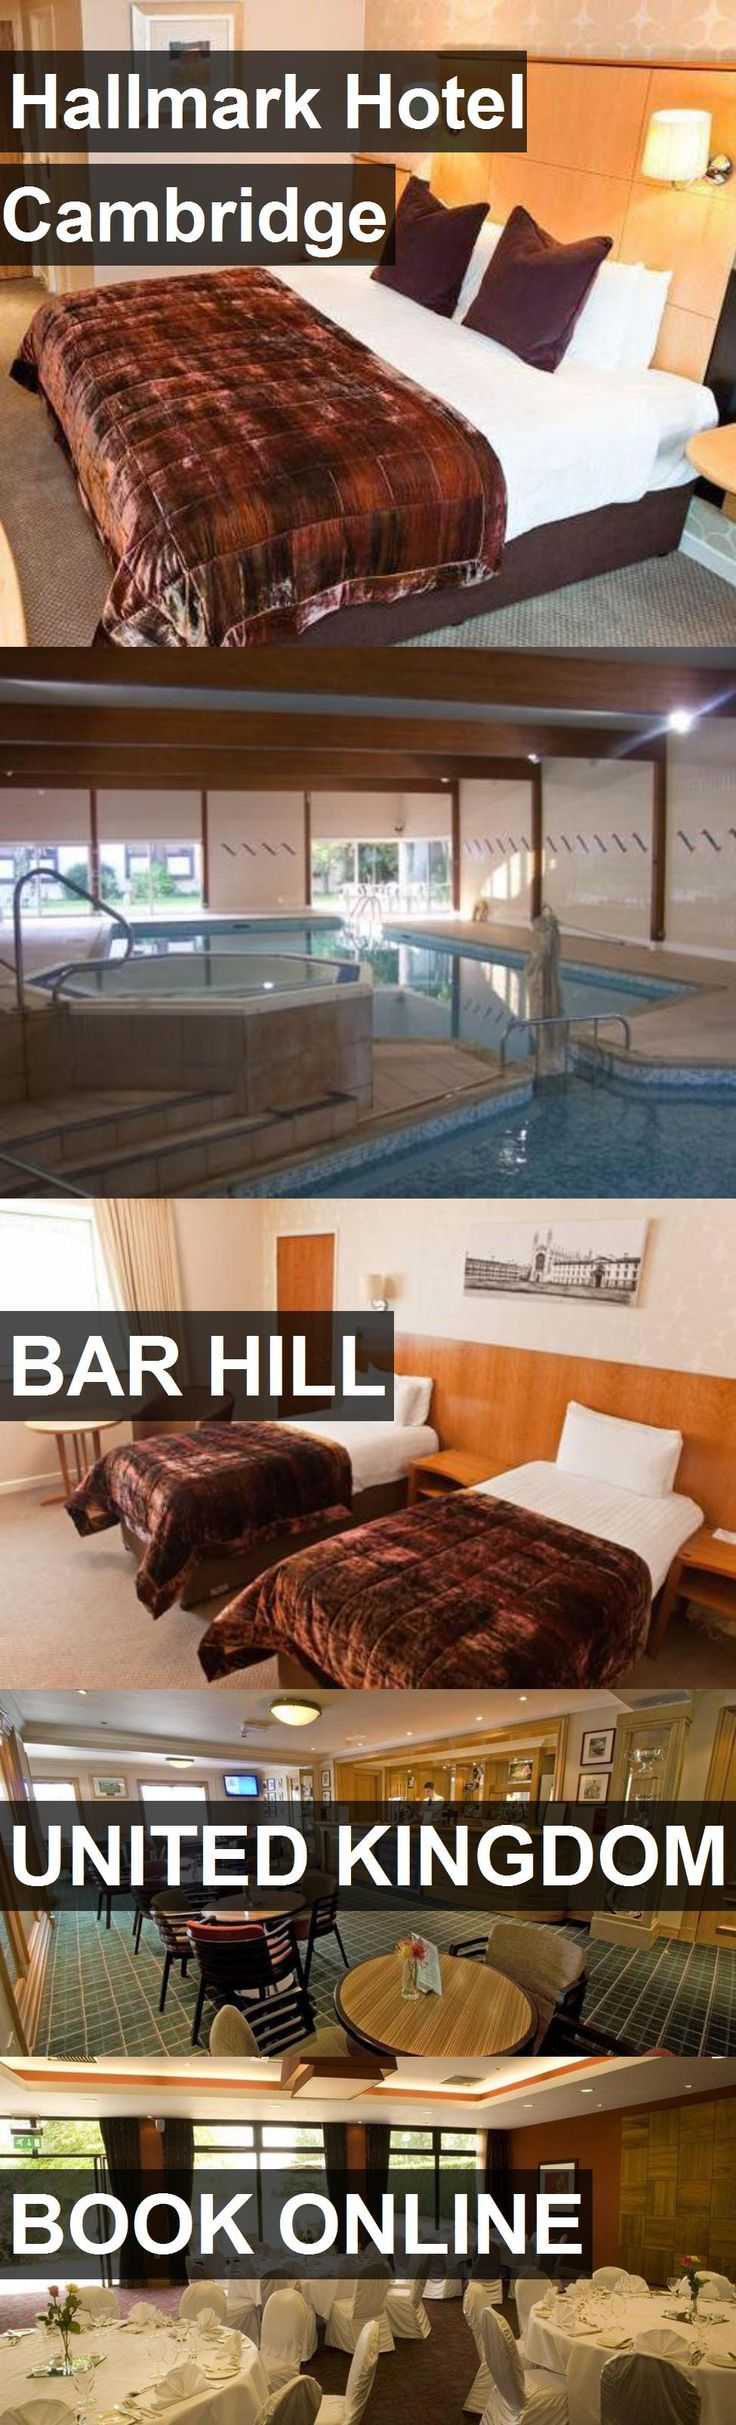 Hallmark Hotel Cambridge in Bar Hill, United Kingdom. For more information, photos, reviews and best prices please follow the link. #UnitedKingdom #BarHill #travel #vacation #hotel